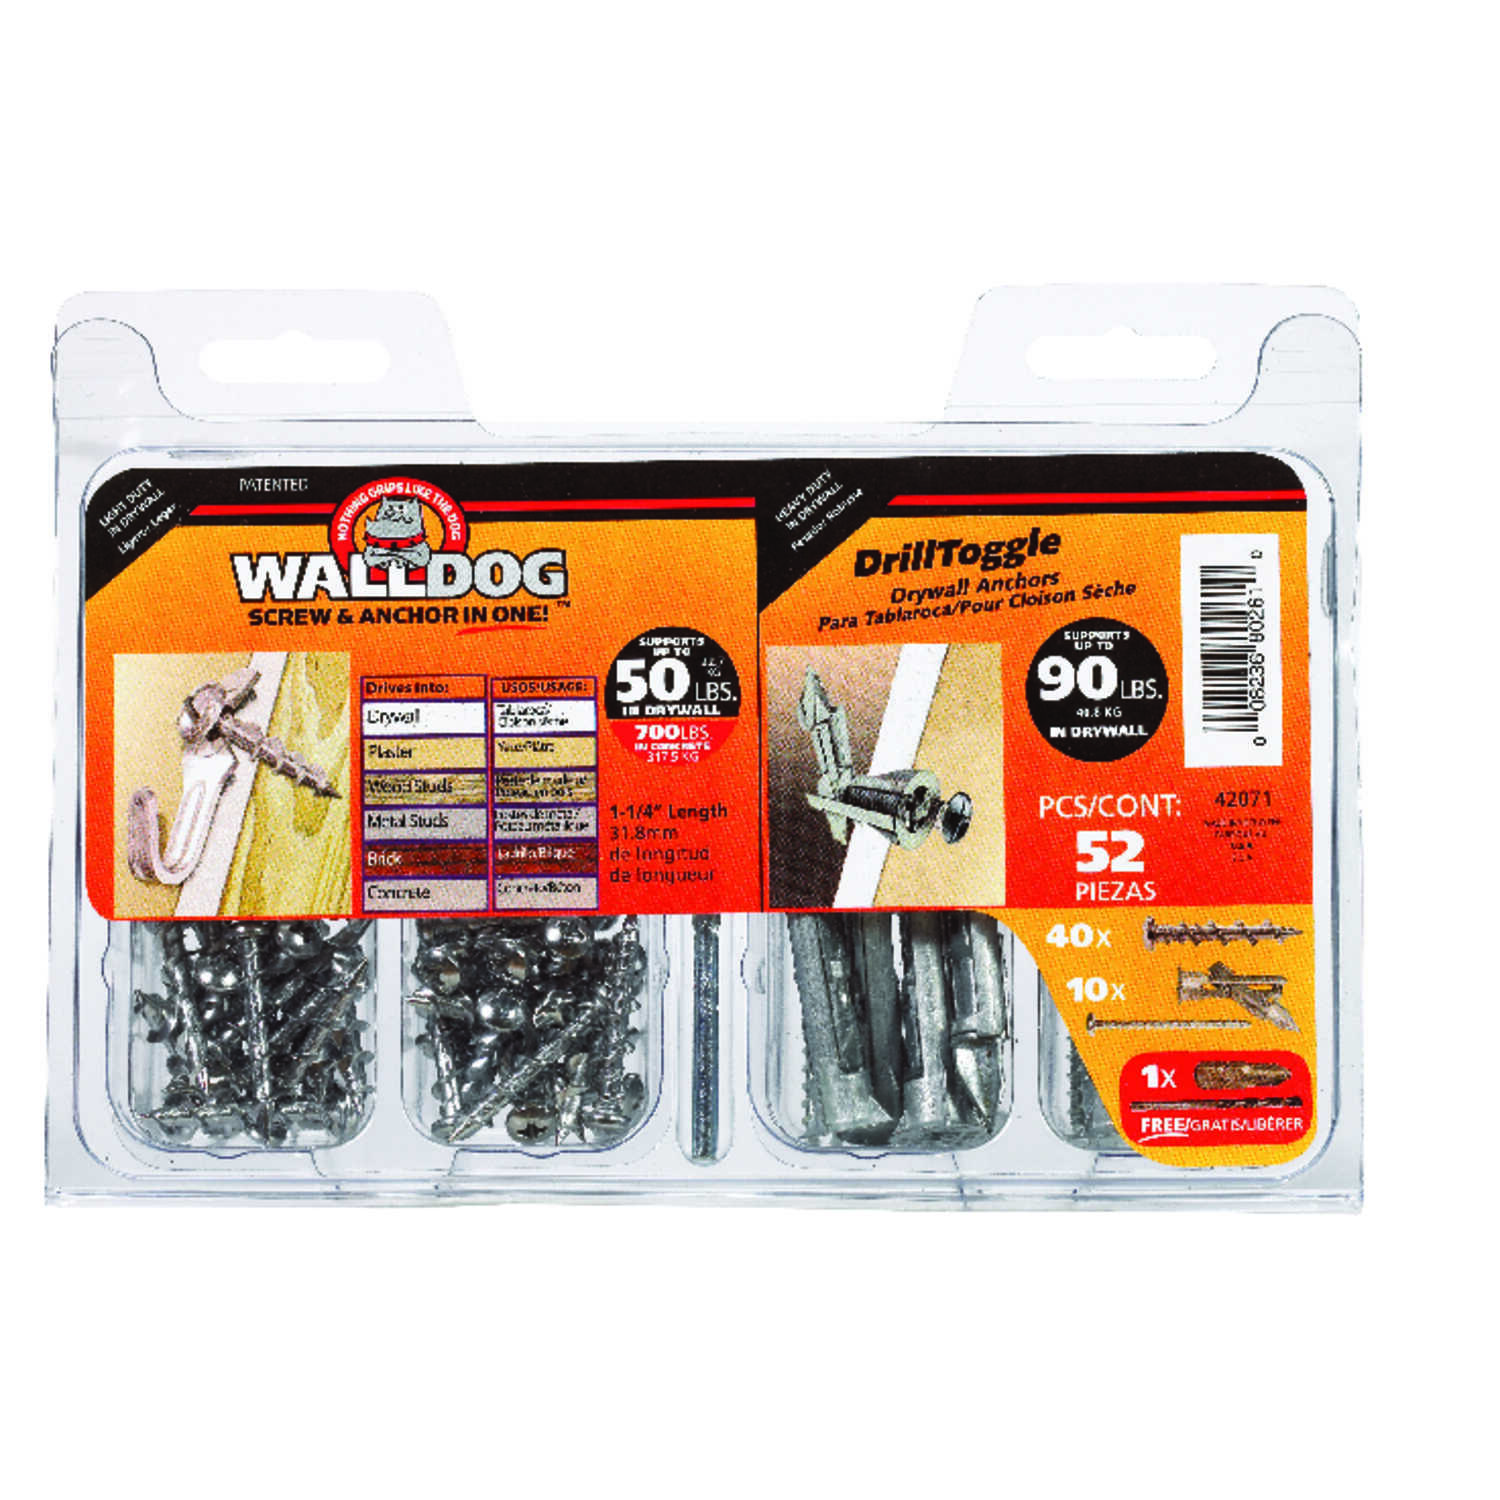 Walldog  No. 10   x 1-1/4 in. L Phillips  Pan  Chrome  Chrome  Construction Screws  52 pk